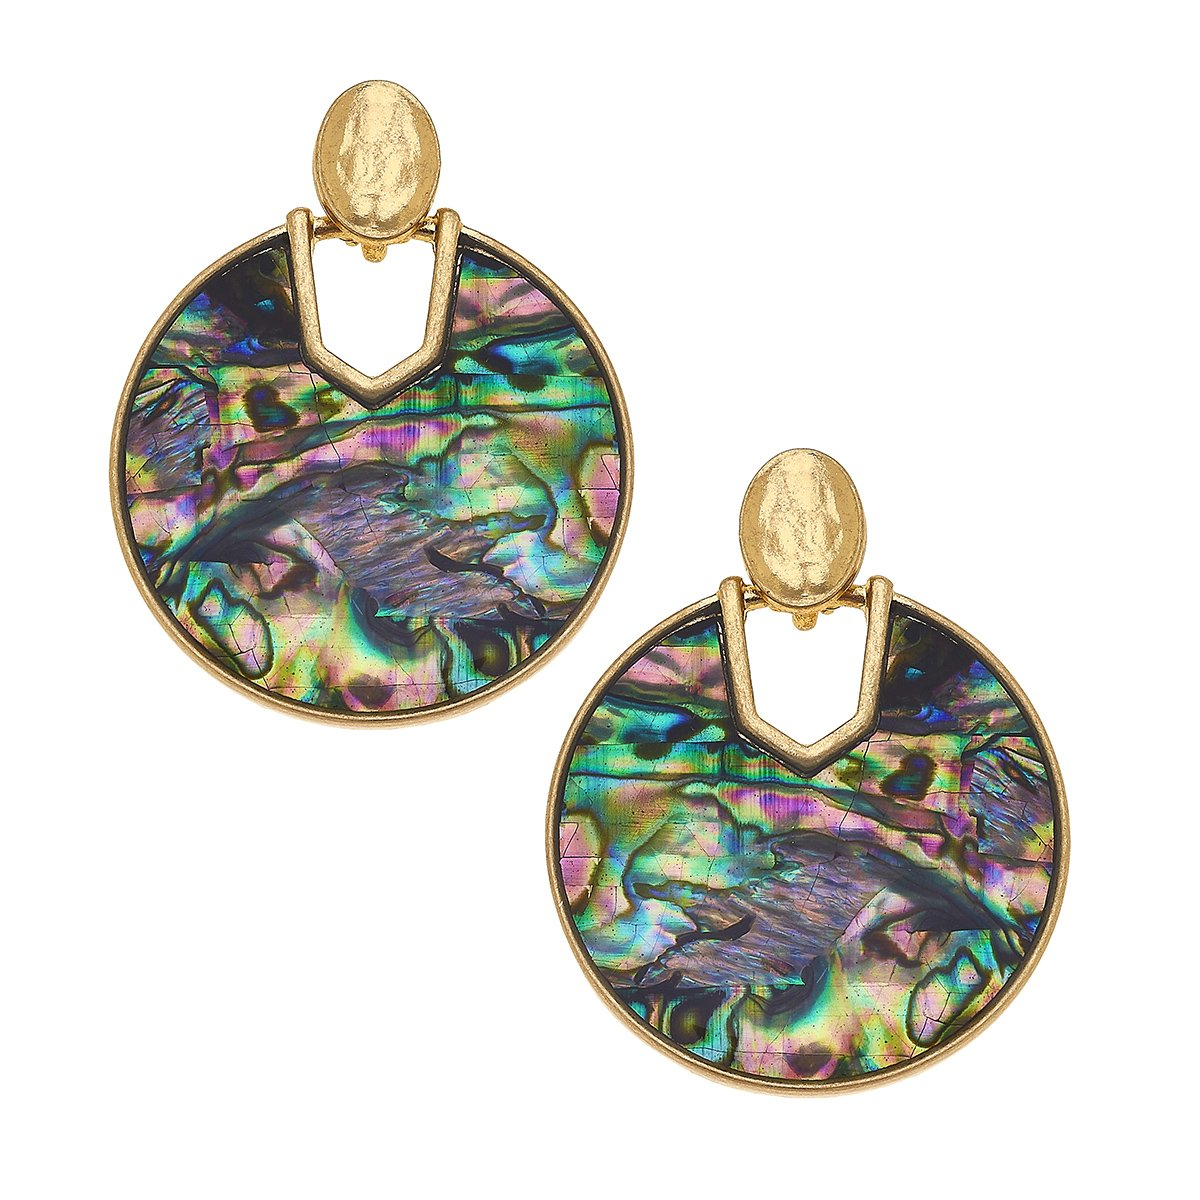 Genoa Earrings In Abalone Mother Of Pearl Shell